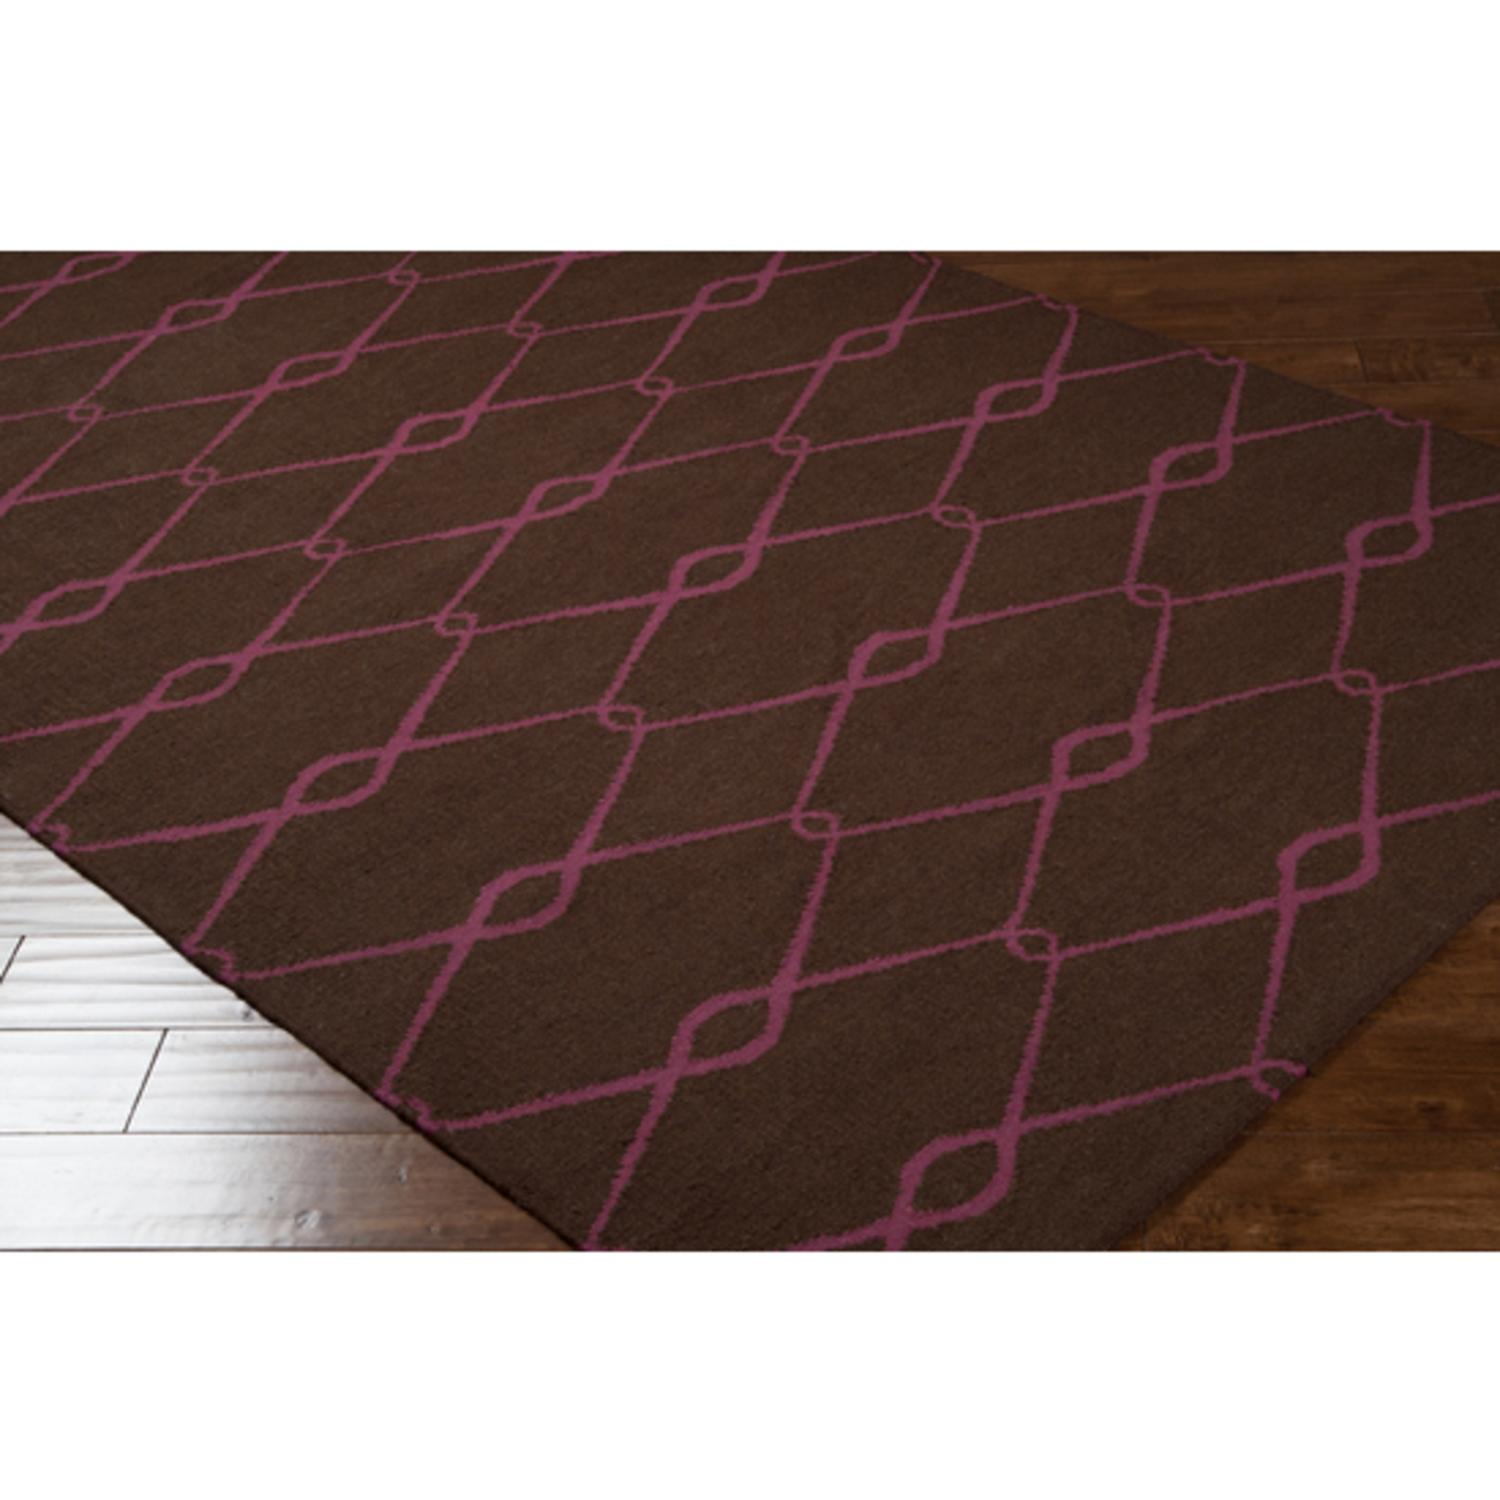 3.5' X 5.5' Chocolate Covered Cherry Cerise and Brown Wool Area Throw Rug